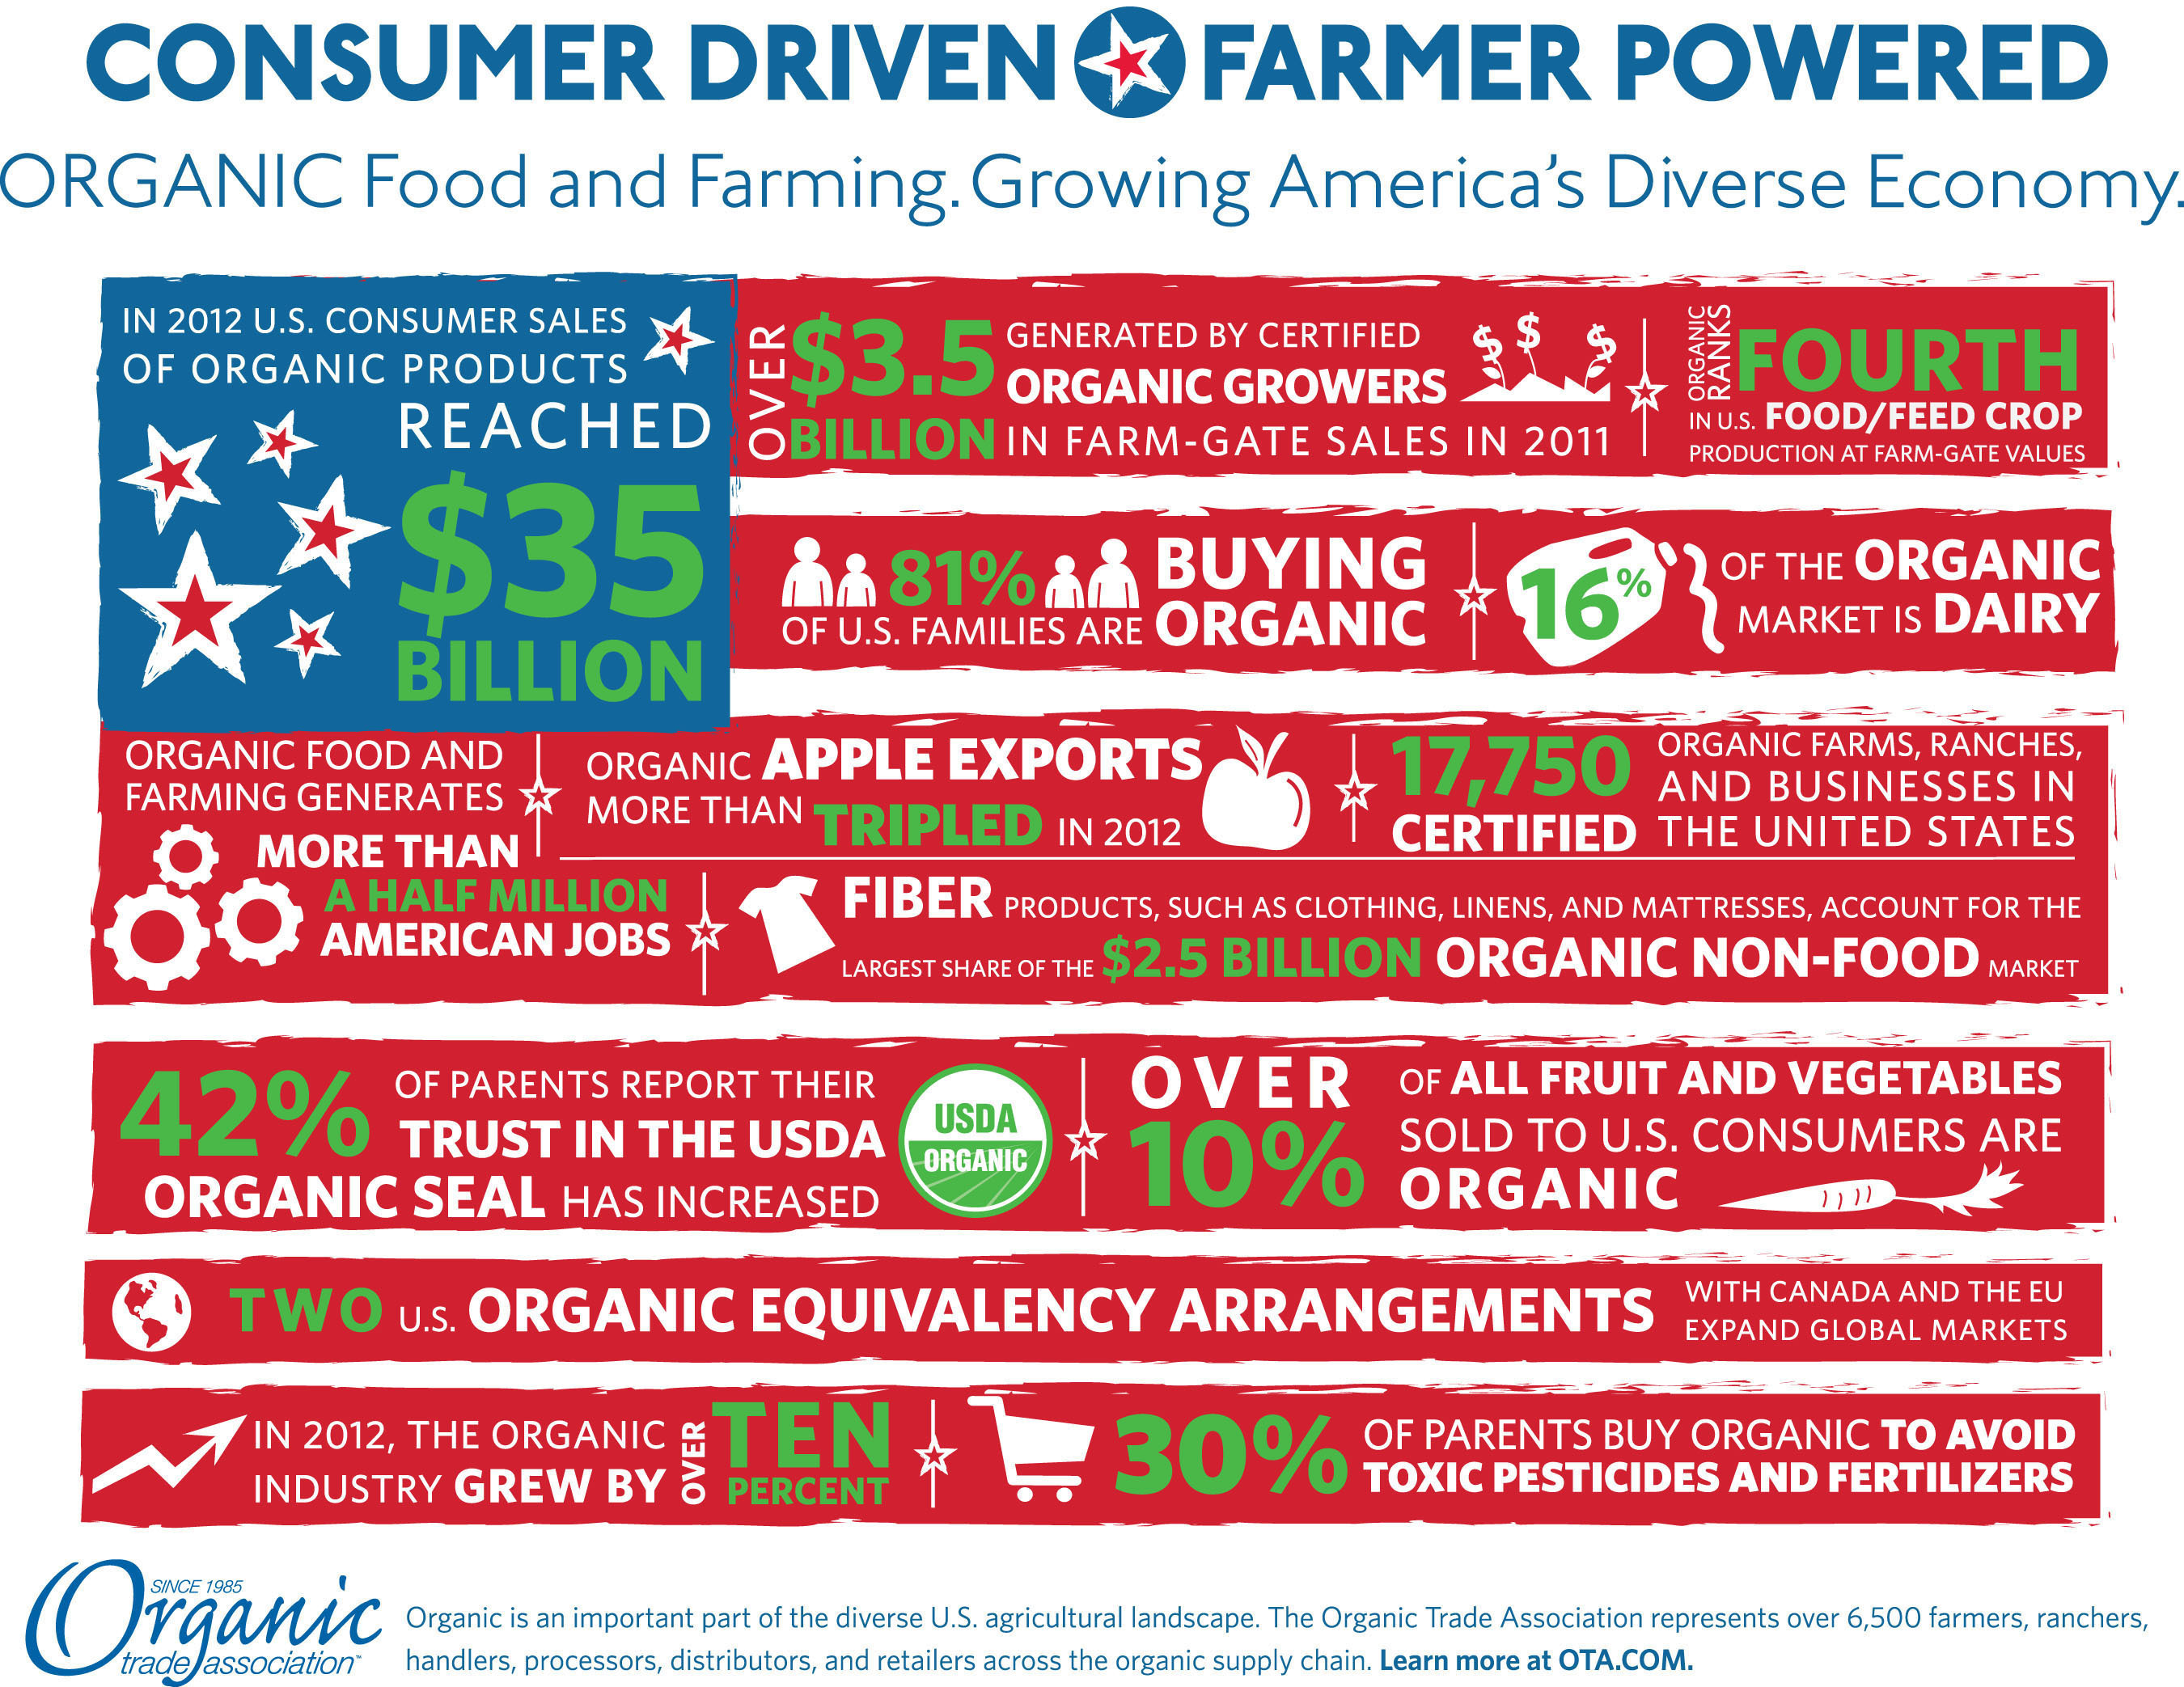 The U.S. organic sector is consumer driven and farmer powered.  (PRNewsFoto/Organic Trade Association)